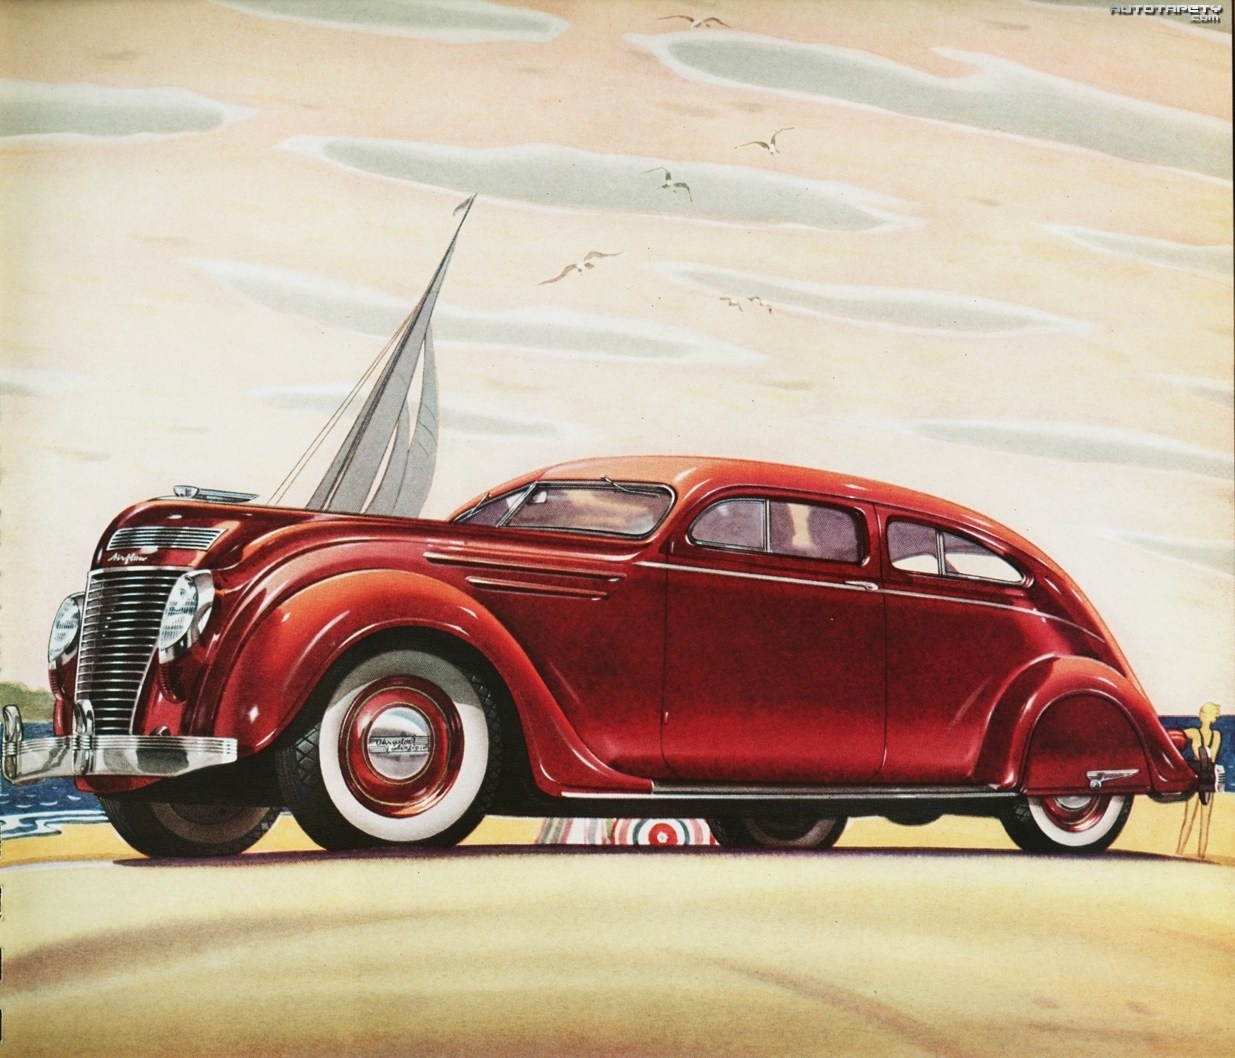 Chrysler Airstream, Rysunek, Obraz